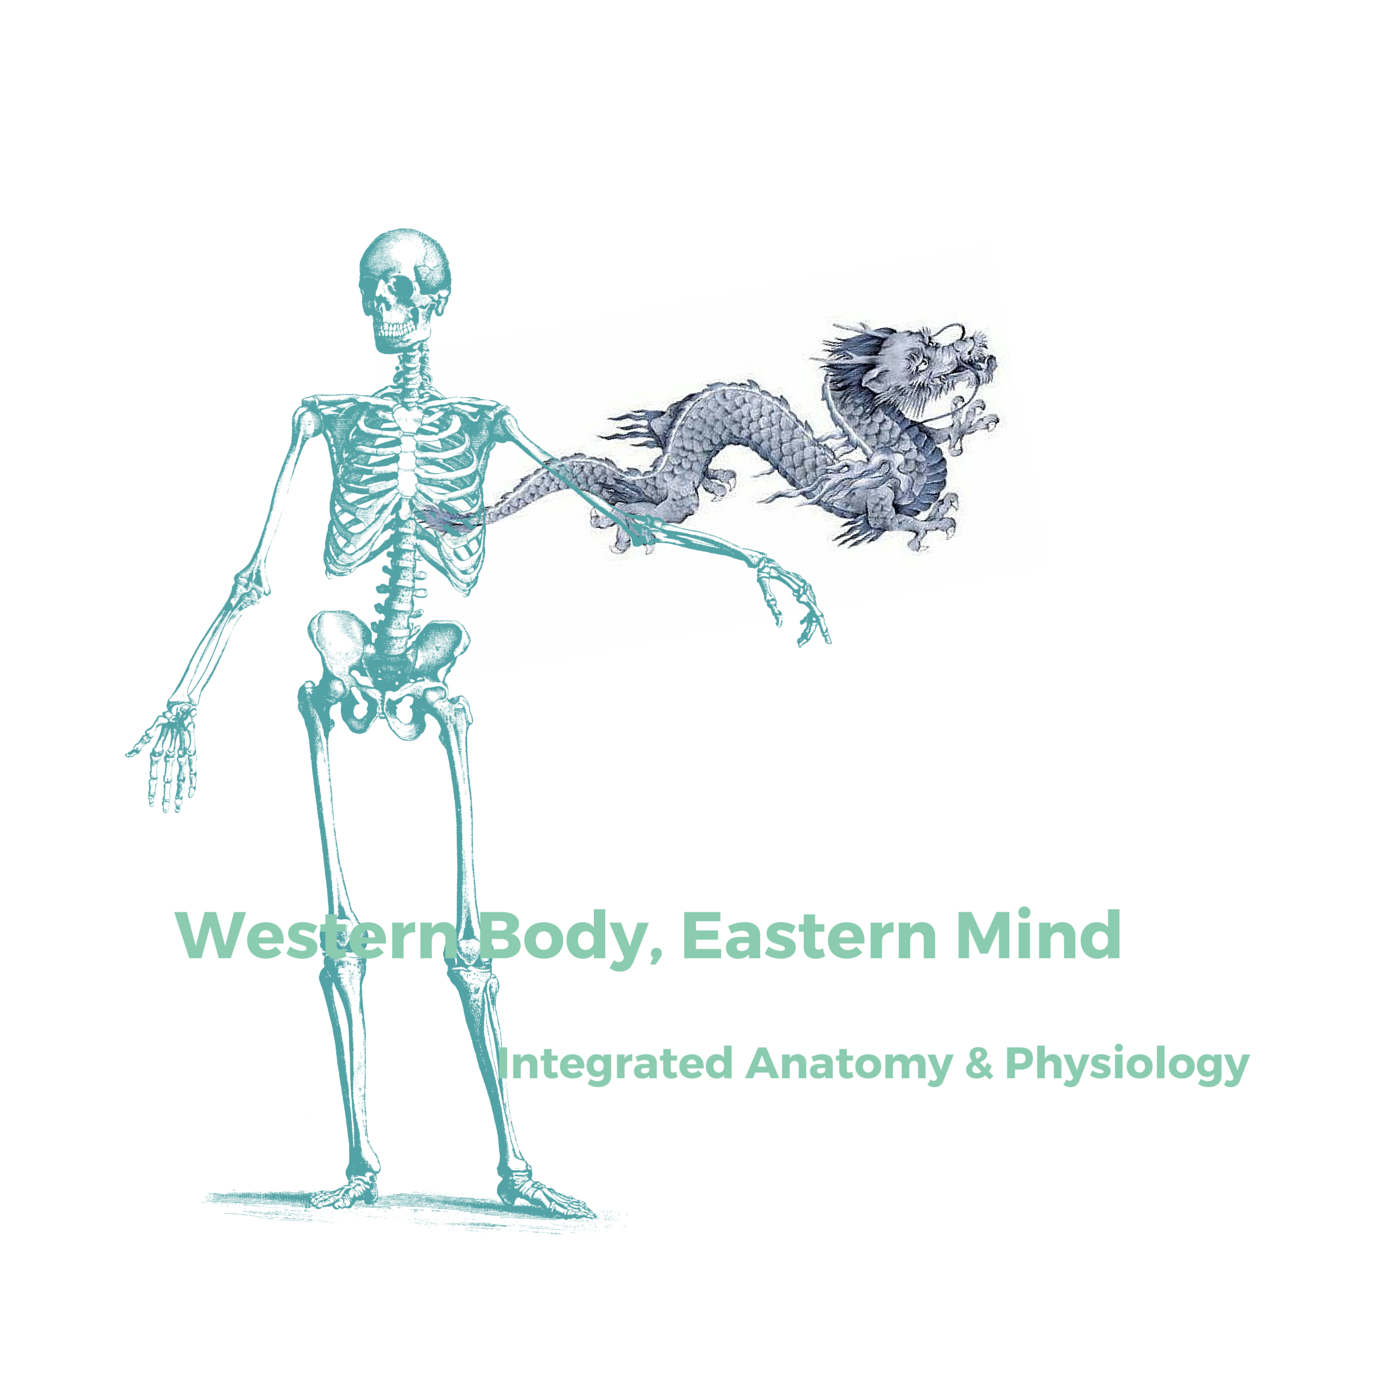 Sign Up for Free Introduction to Western Body, Eastern Mind